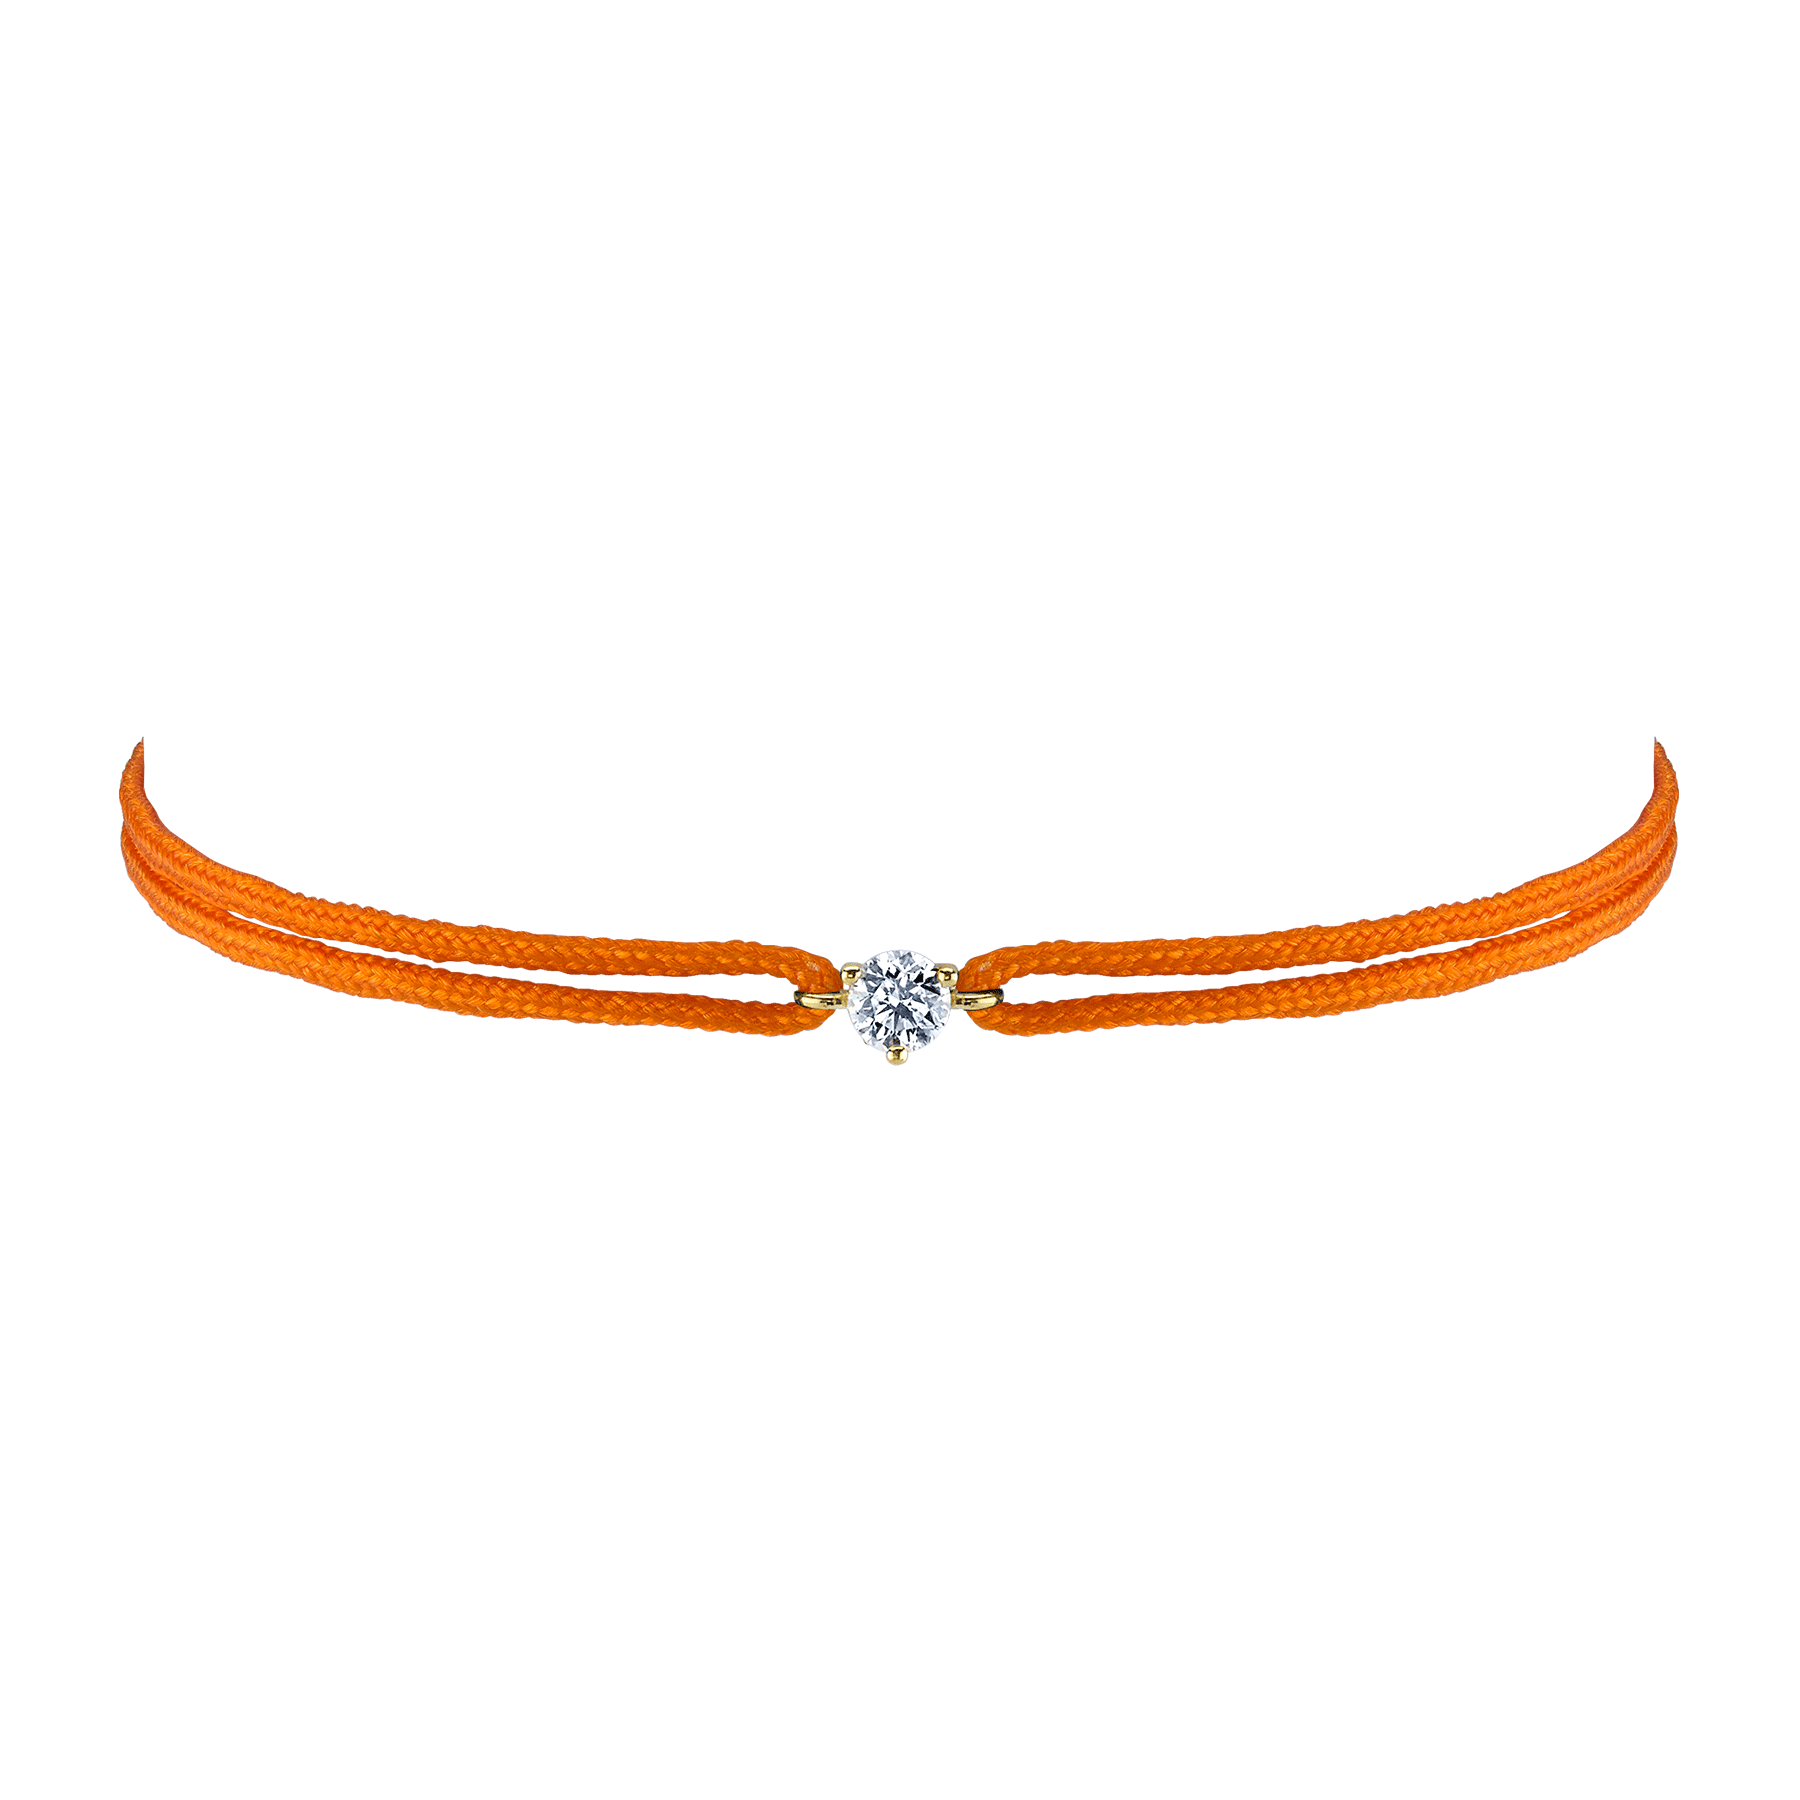 LARGE SOLITAIRE DIAMOND FRIENDSHIP BRACELET